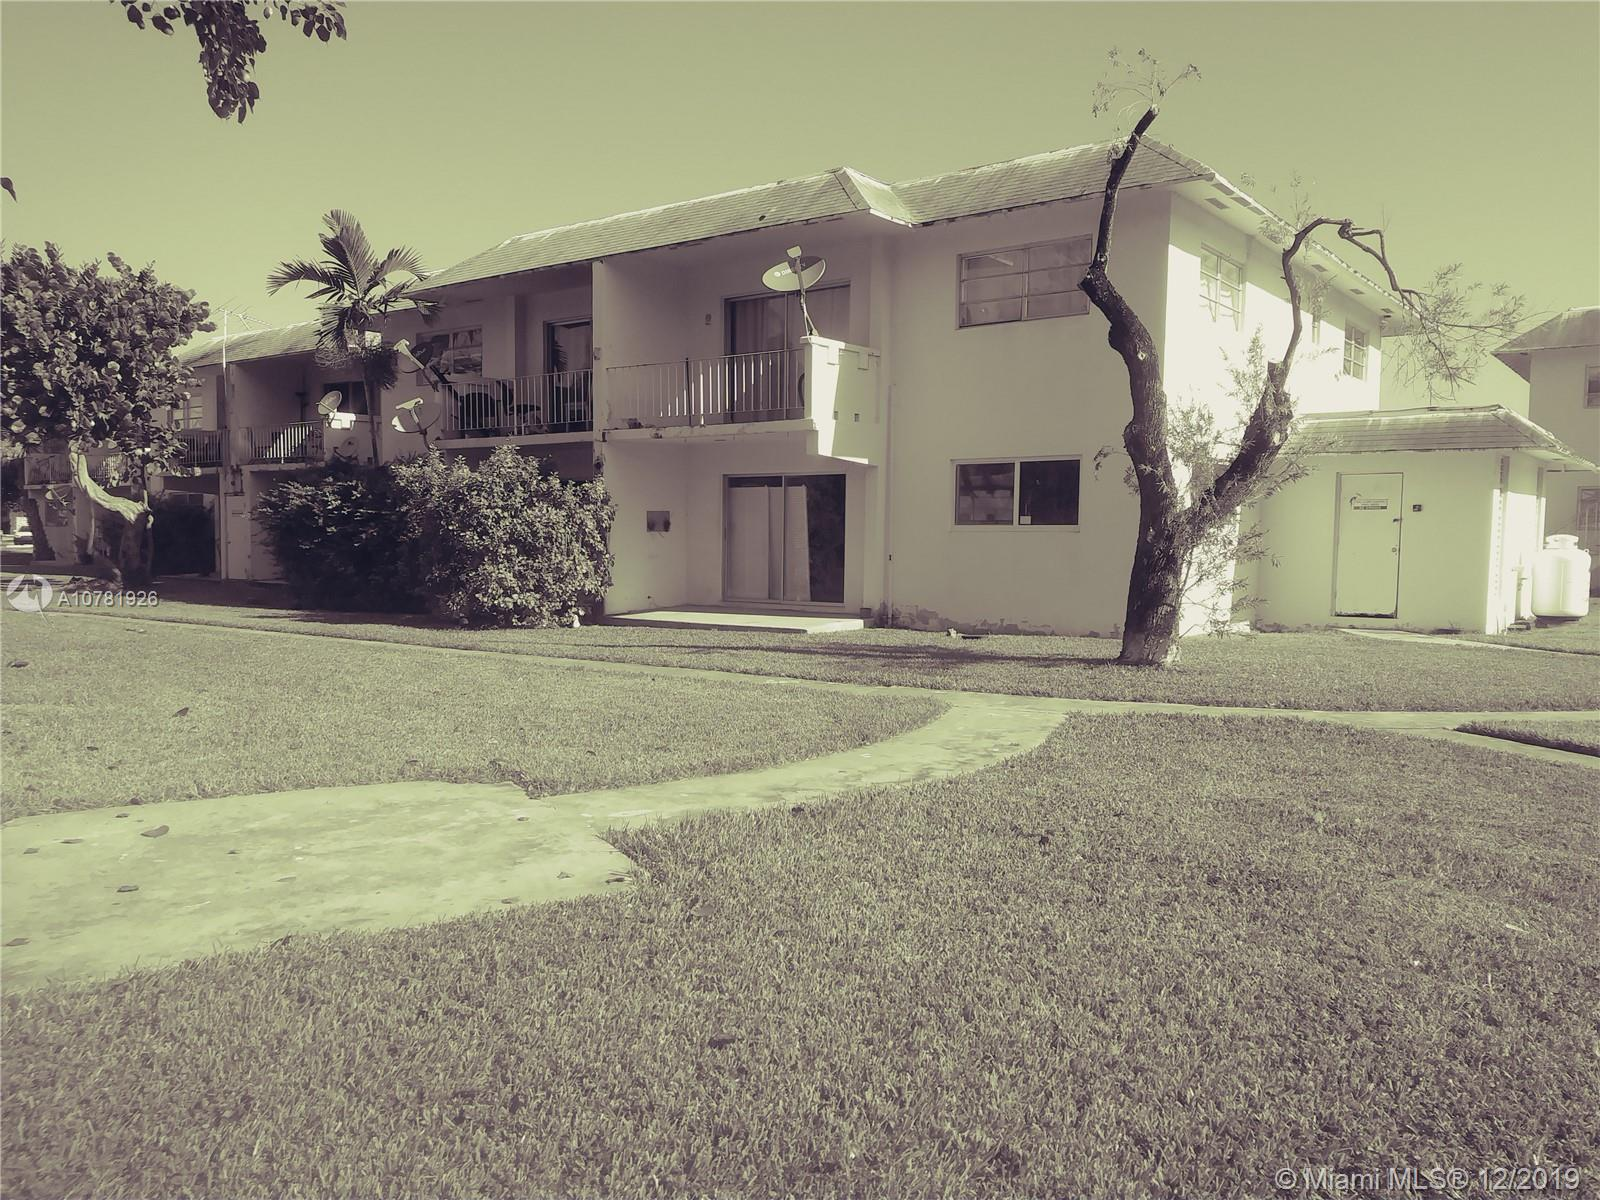 7424 SW 82 St #d113 For Sale A10781926, FL